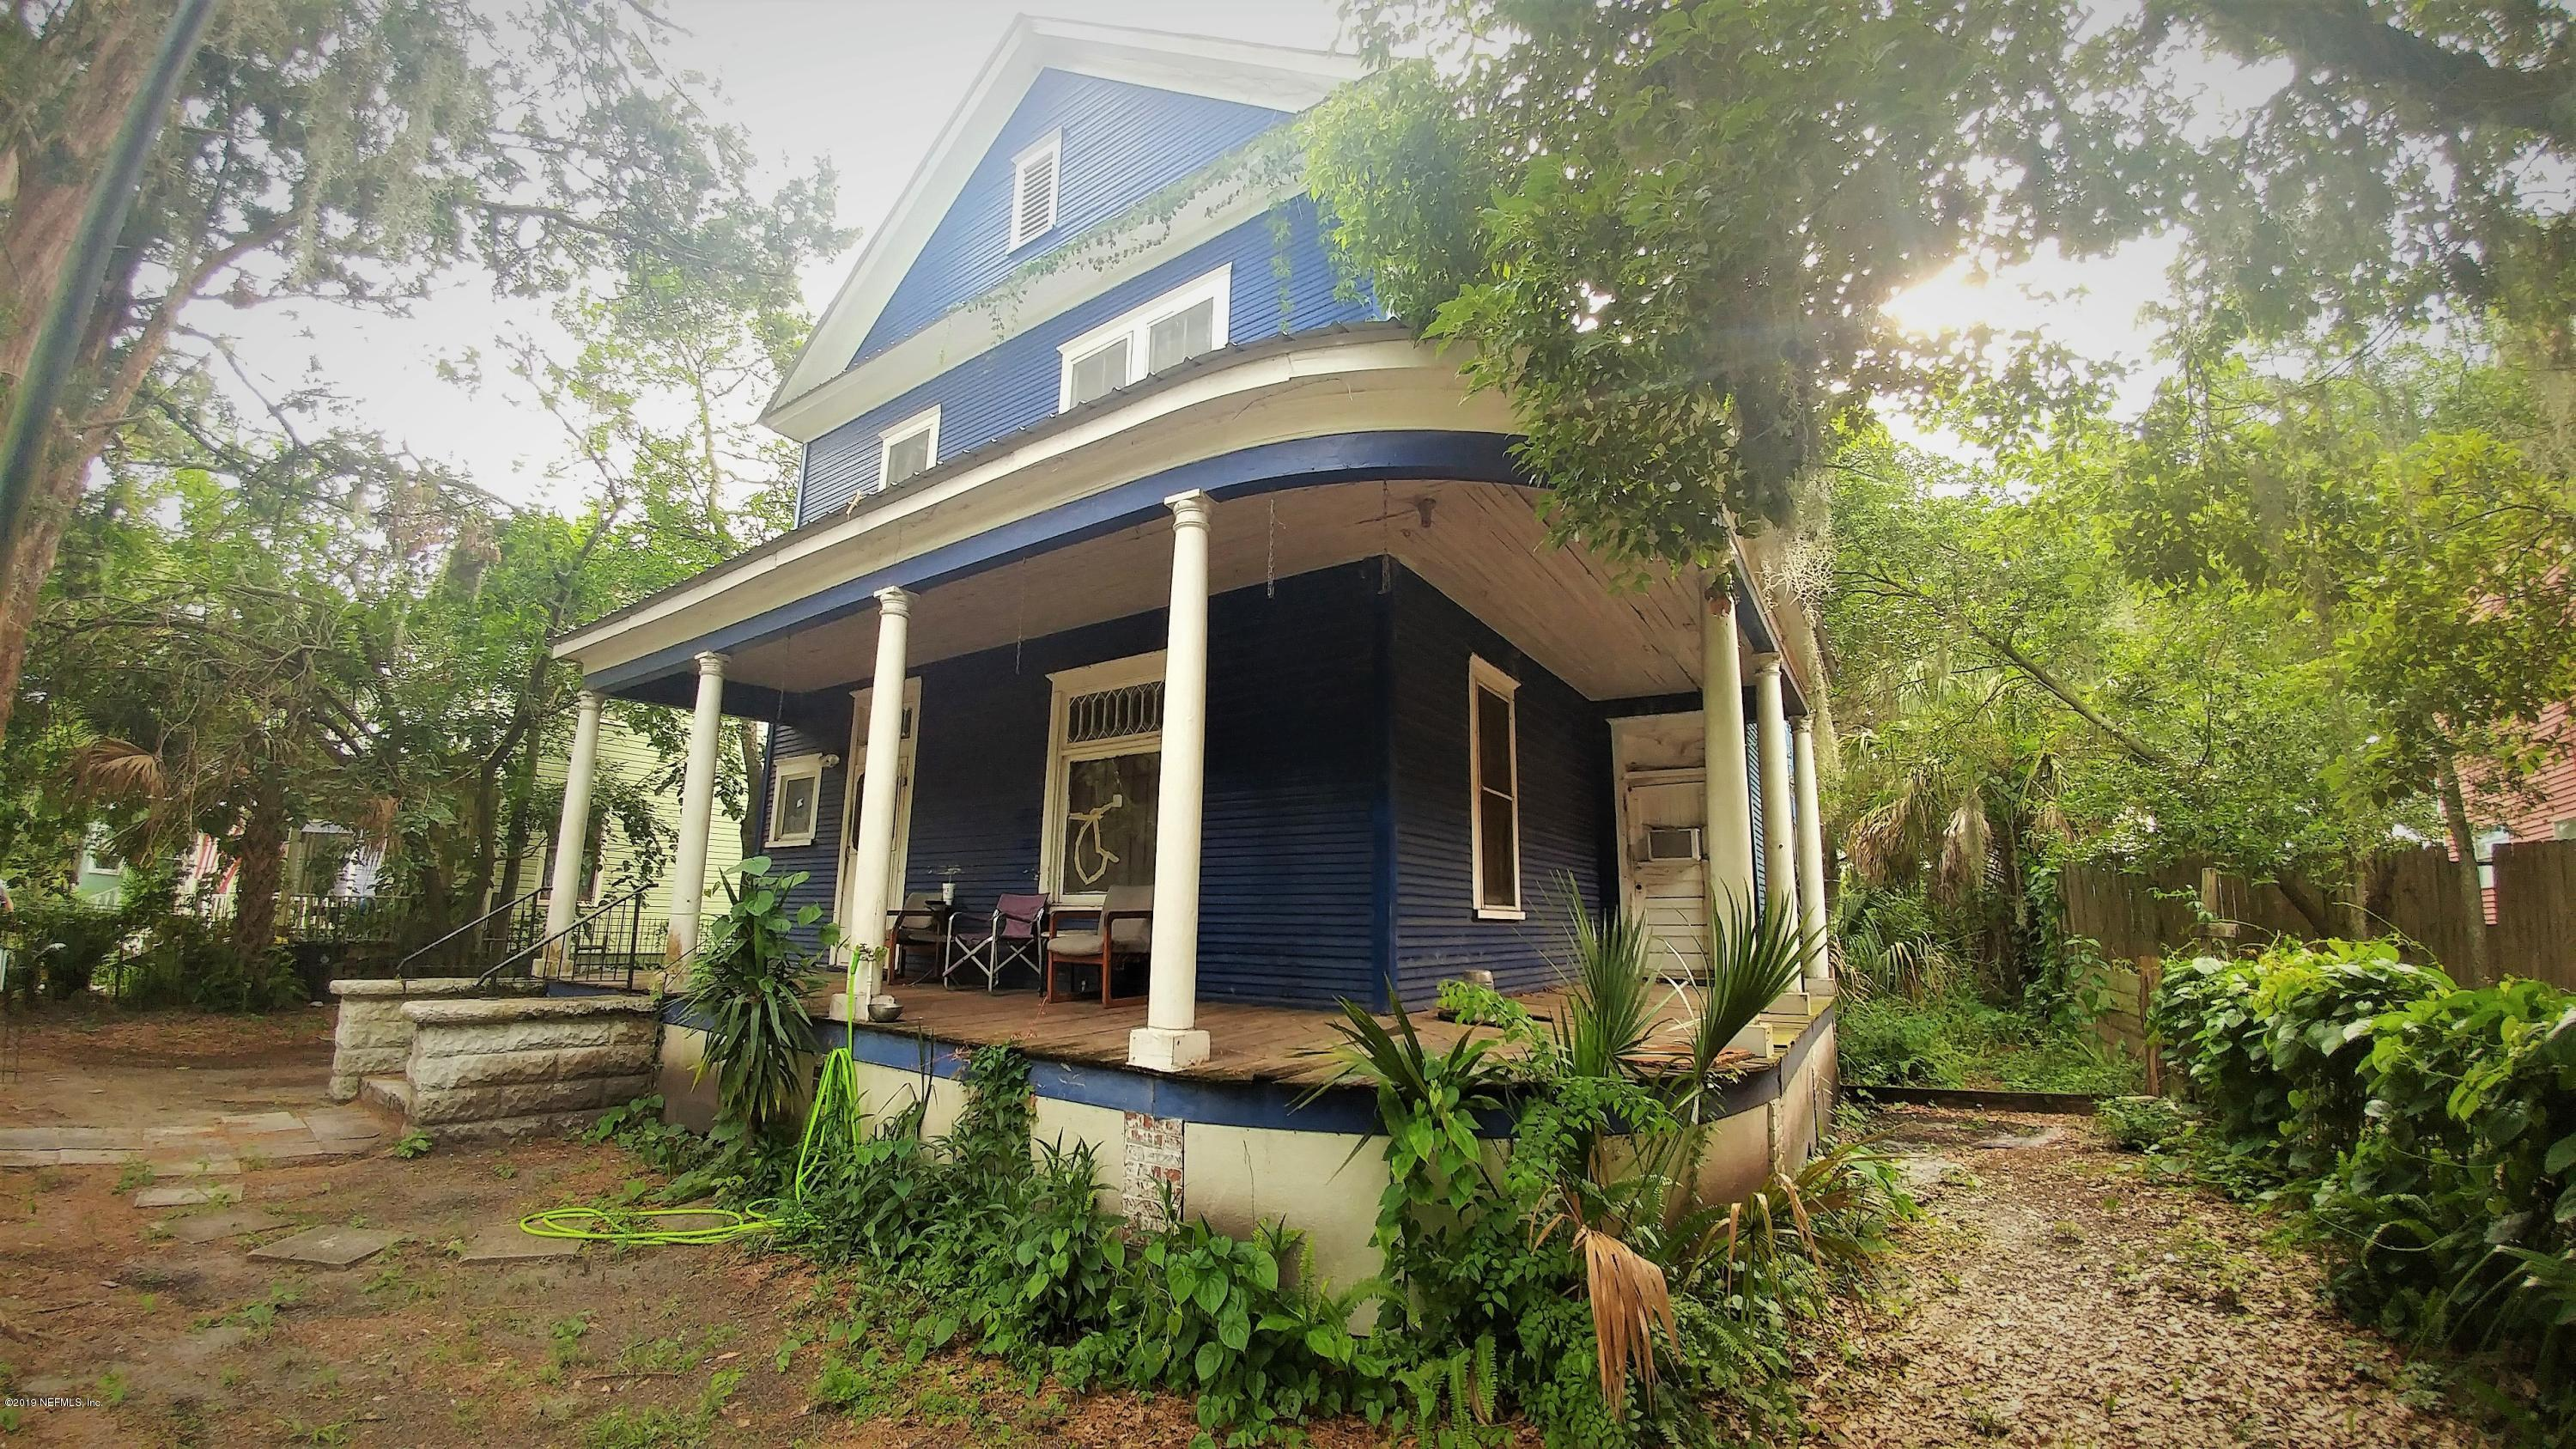 1424 HUBBARD, JACKSONVILLE, FLORIDA 32206, 3 Bedrooms Bedrooms, ,2 BathroomsBathrooms,Residential - single family,For sale,HUBBARD,1005196